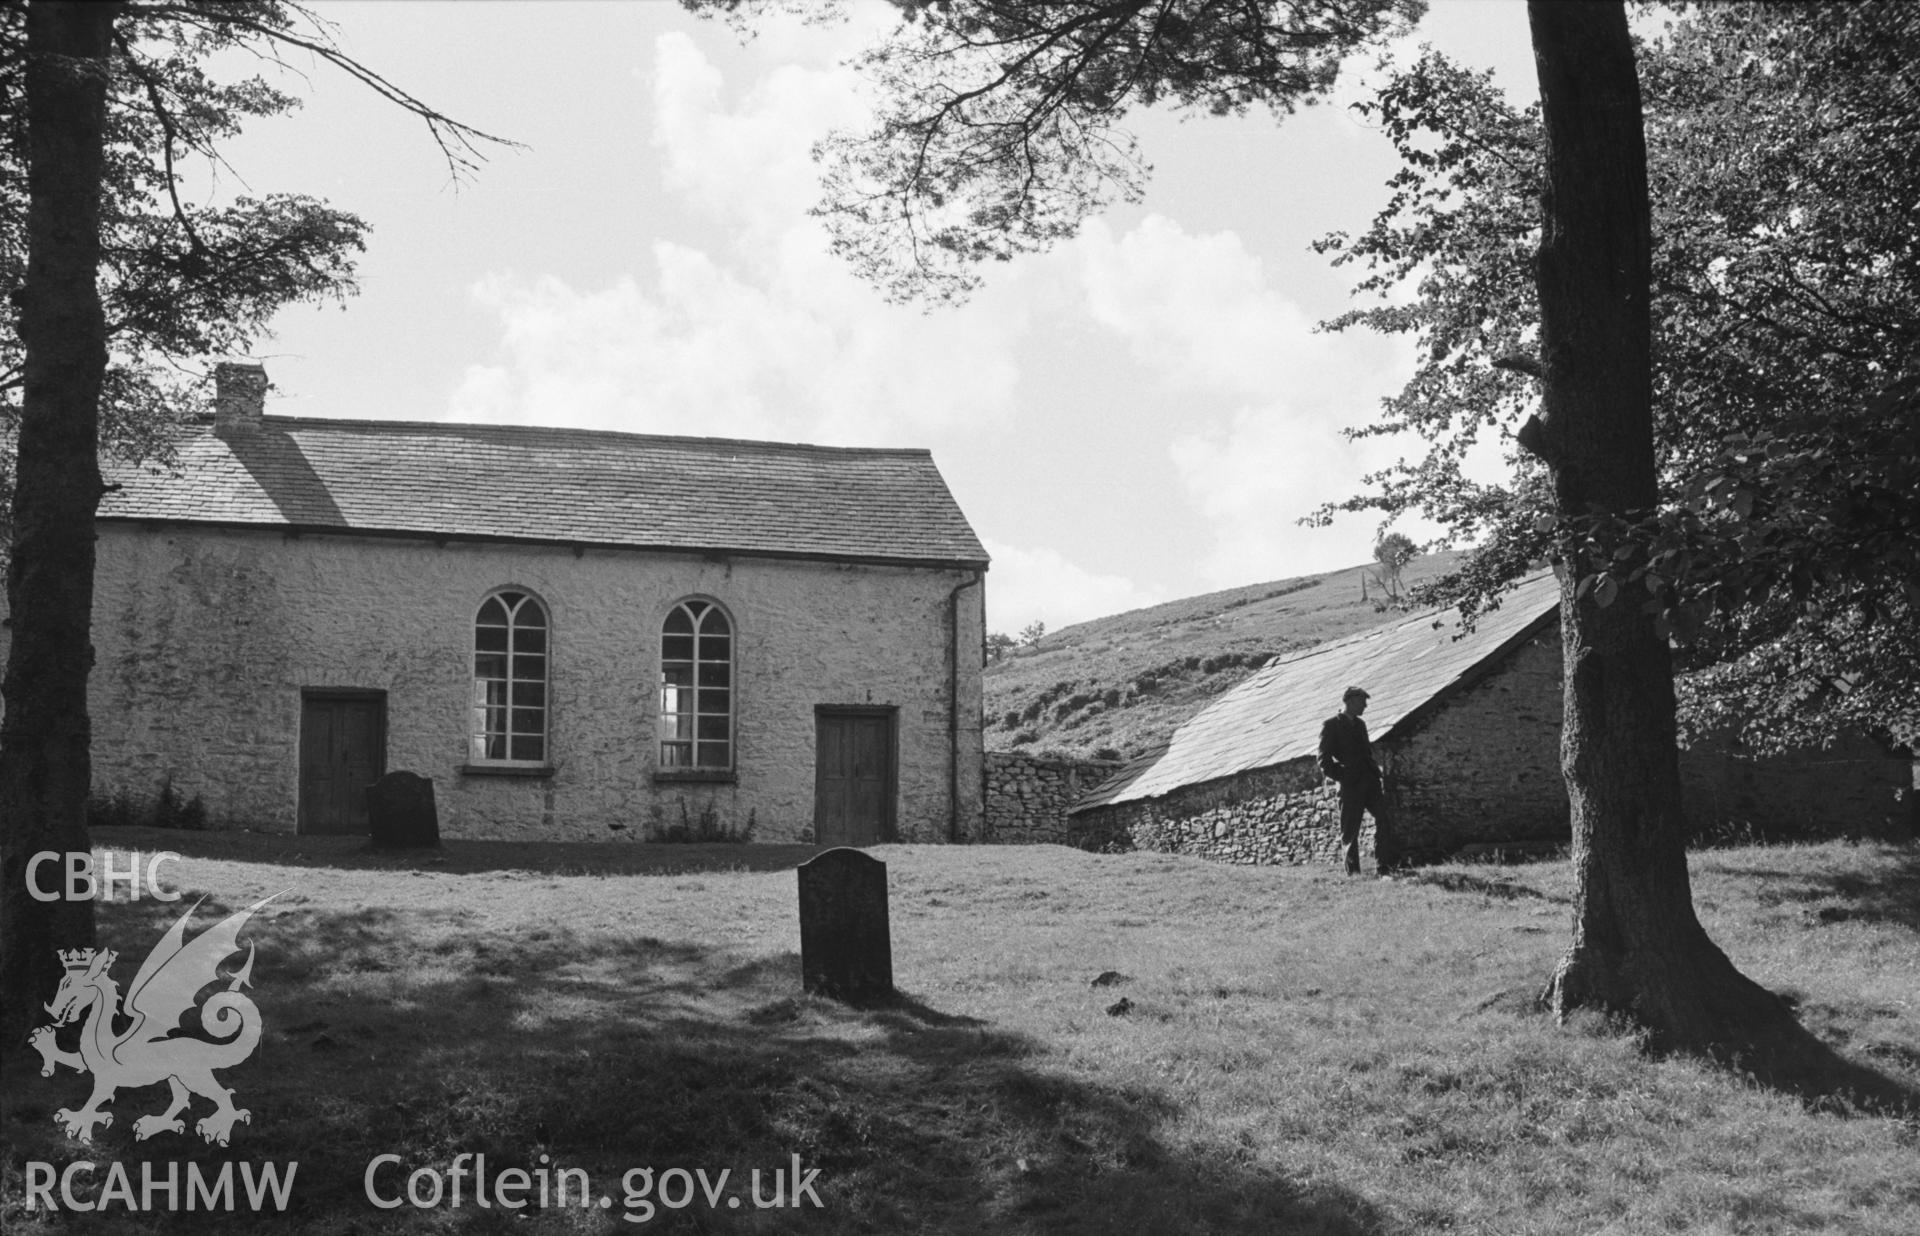 Digital copy of a black and white negative showing exterior front elevation of Soar-y-Mynydd, Llanddewi Brefi. Photographed in September 1963 by Arthur O. Chater from the graveyard at Grid Reference SN 7850 5328, looking west south west.